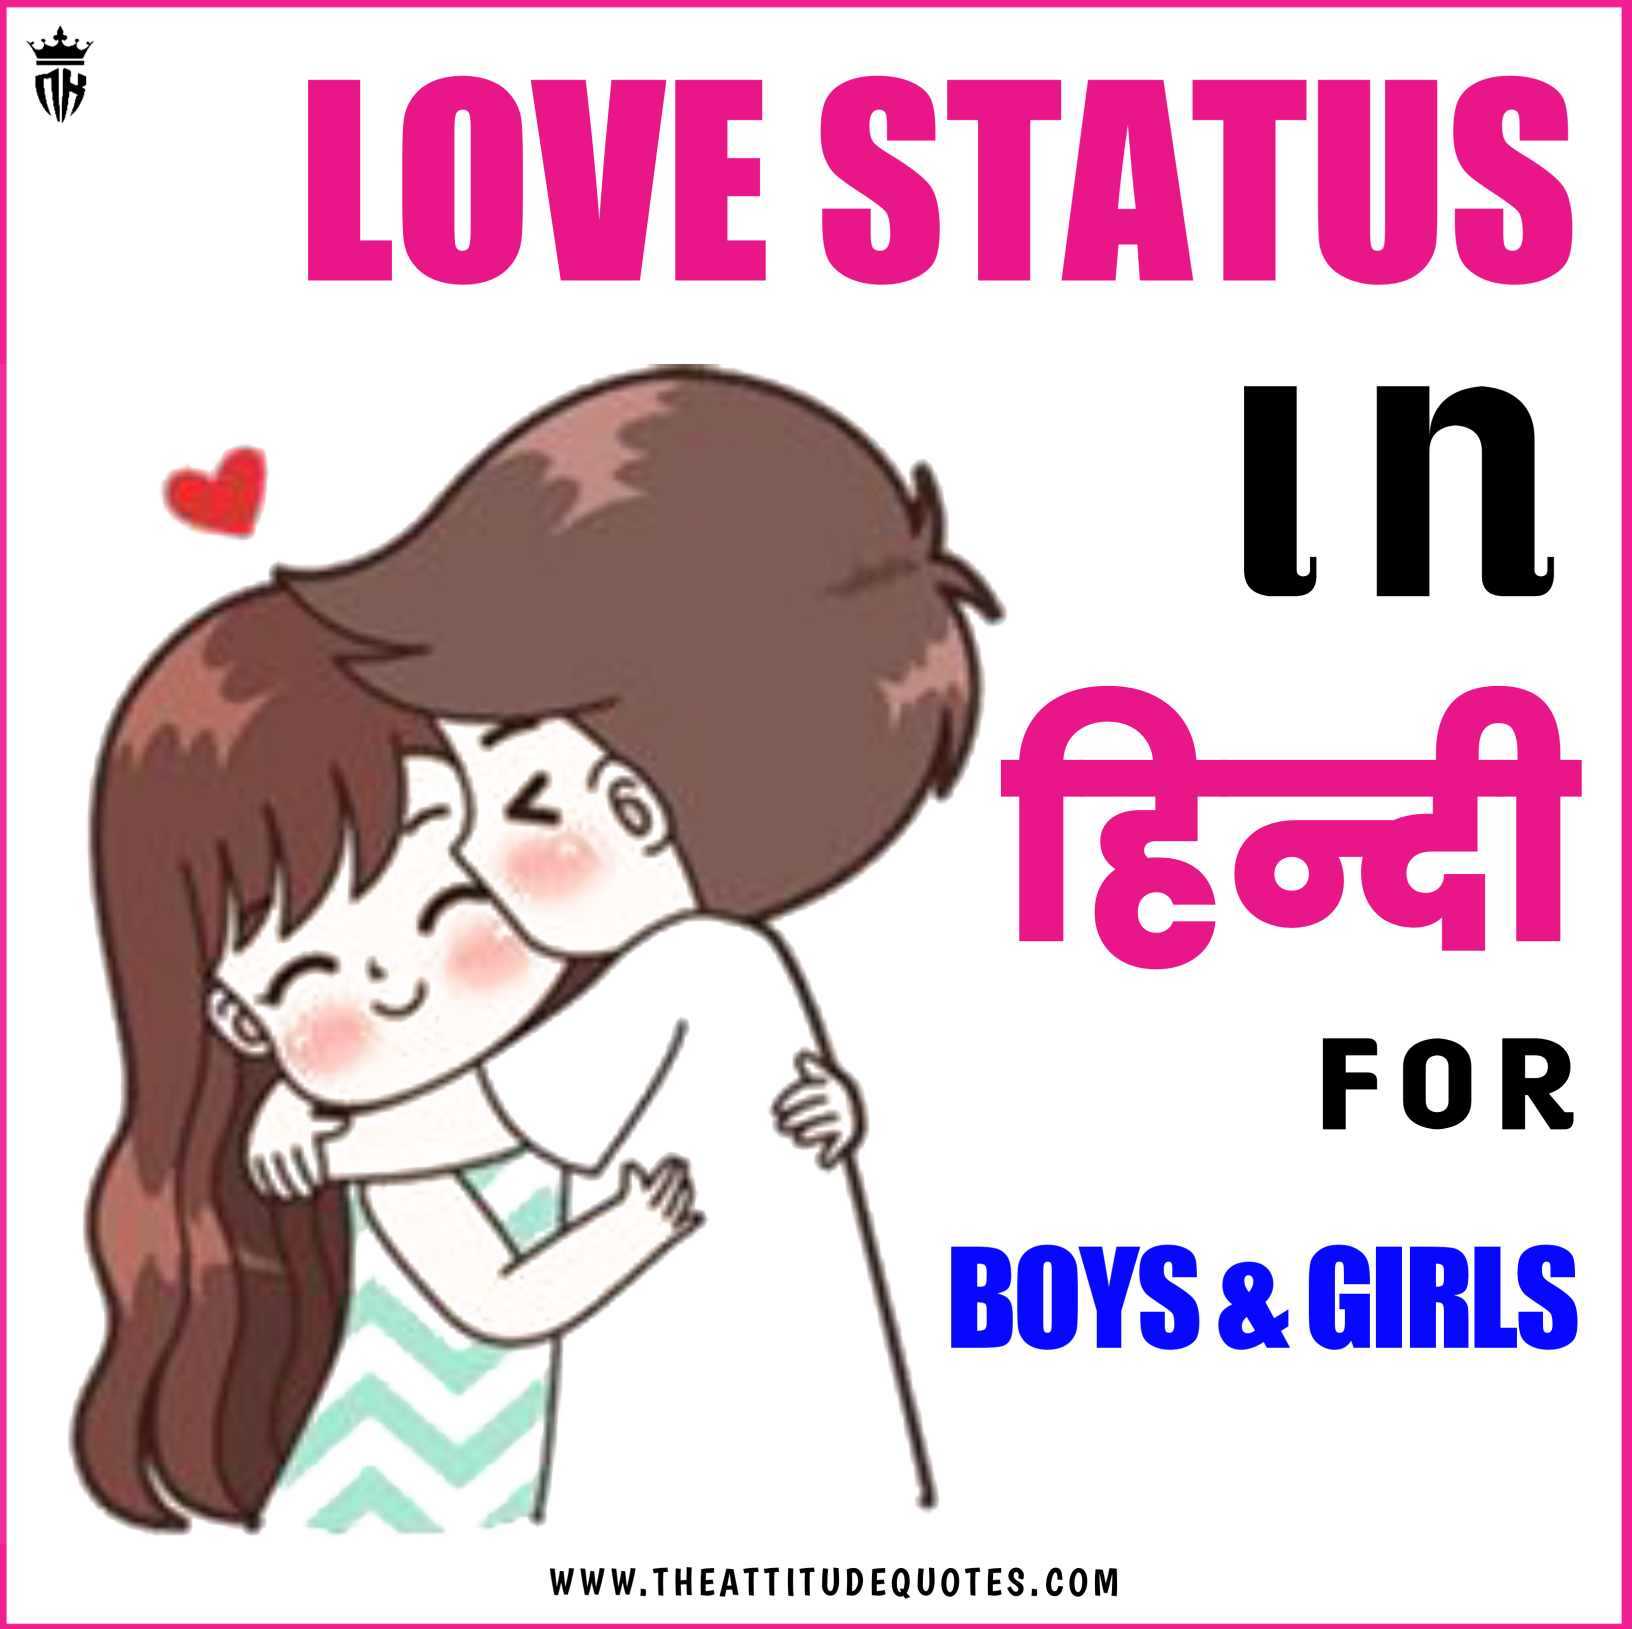 love quotes hindi, sad status in hindi, sad quotes in hindi, love status hindi, attitude shayari for girls, love sad status, love shayari in hindi for girlfriend, sister shayari, good morning images shayari, love thoughts in hindi, sad love quotes in hindi, sad quotes on life in hindi, intezar shayari, promise day shayari, rose day shayari, shayari for gf, heart touching love quotes in hindi, sad status in hindi for life, attitude girl shayari, heart touching quotes in hindi, romantic quotes in hindi, one sided love shayari, attitude shayari girls, shayari for girlfriend, broken heart quotes in hindi, tareef shayari, radha krishna shayari, khamoshi shayari, romantic status in hindi, love attitude status in hindi, romantic love status in hindi true love quotes in hindi , breakup quotes in hindi, sad love status in hindi, attitude status shayari, love shayari for gf, heart touching lines in hindi, hug day shayari, radha krishna quotes in hindi, sad images in hindi, love status in hindi for girlfriend, sister and brother shayari, romantic shayari for gf, khubsurat shayari, cute love status hindi, emotional status in hindi, ek tarfa pyar shayari, cool photos girl shayari, attitude shayari 2 line, good evening shayari